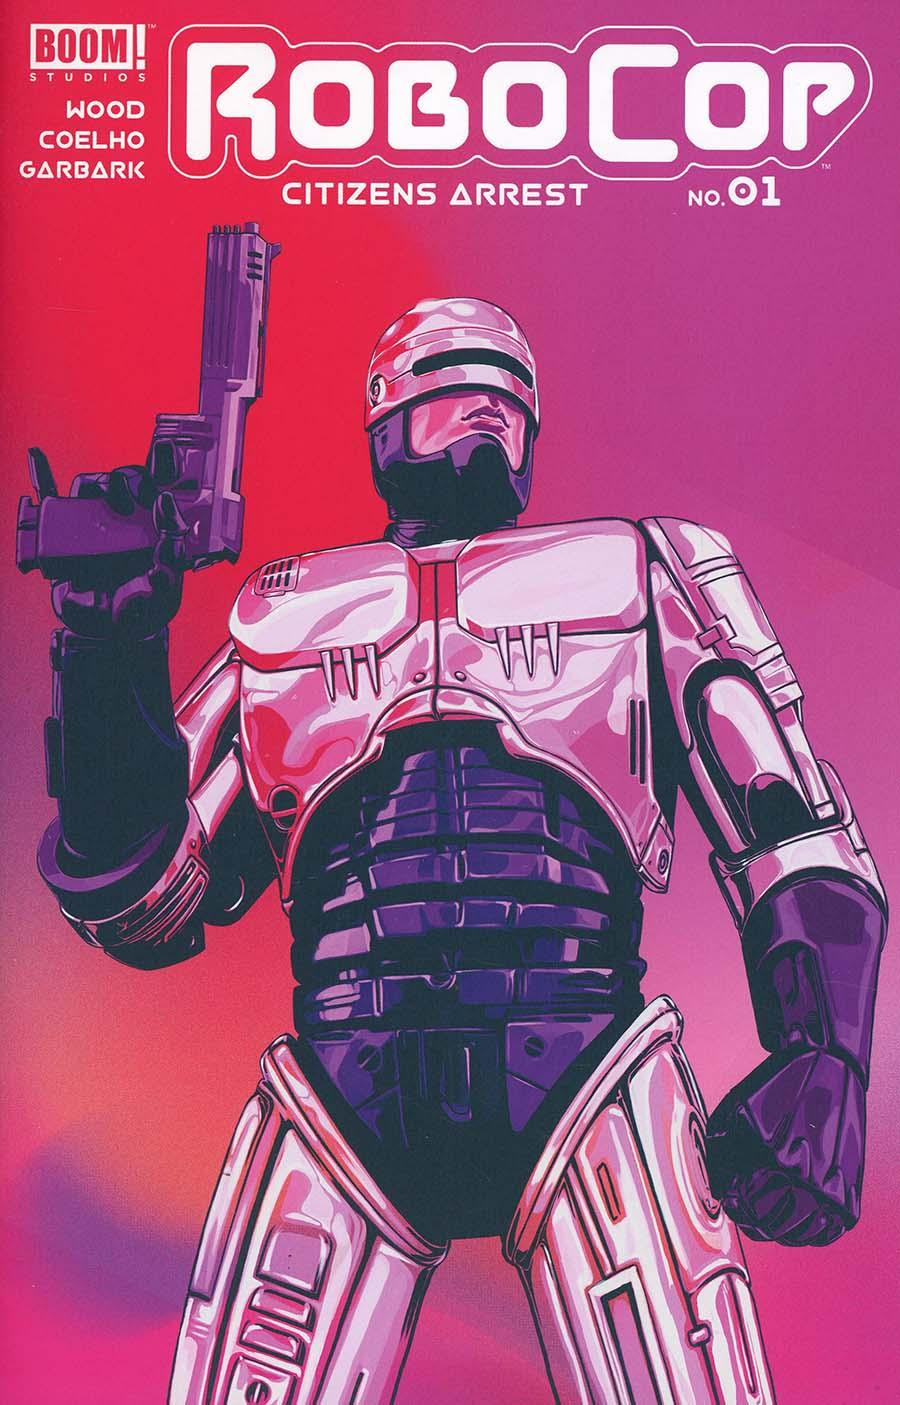 Robocop Citizens Arrest Vol. 1 #1